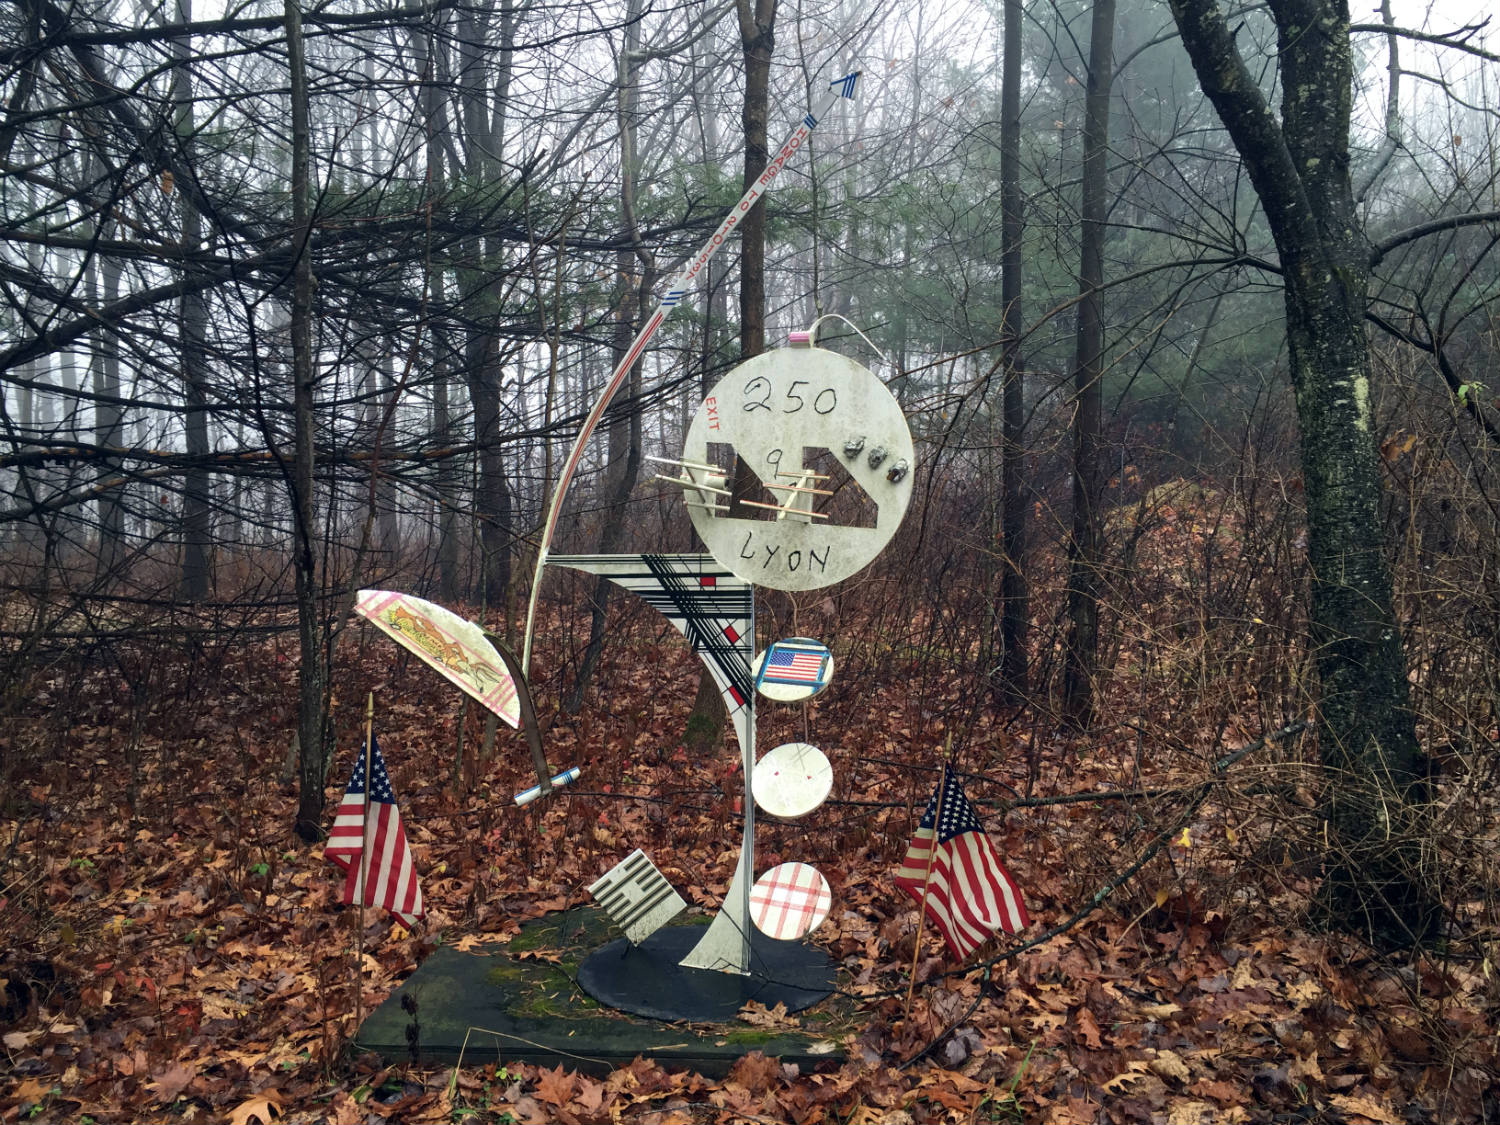 The C Lyon Sculpture Park in Horseheads, New York